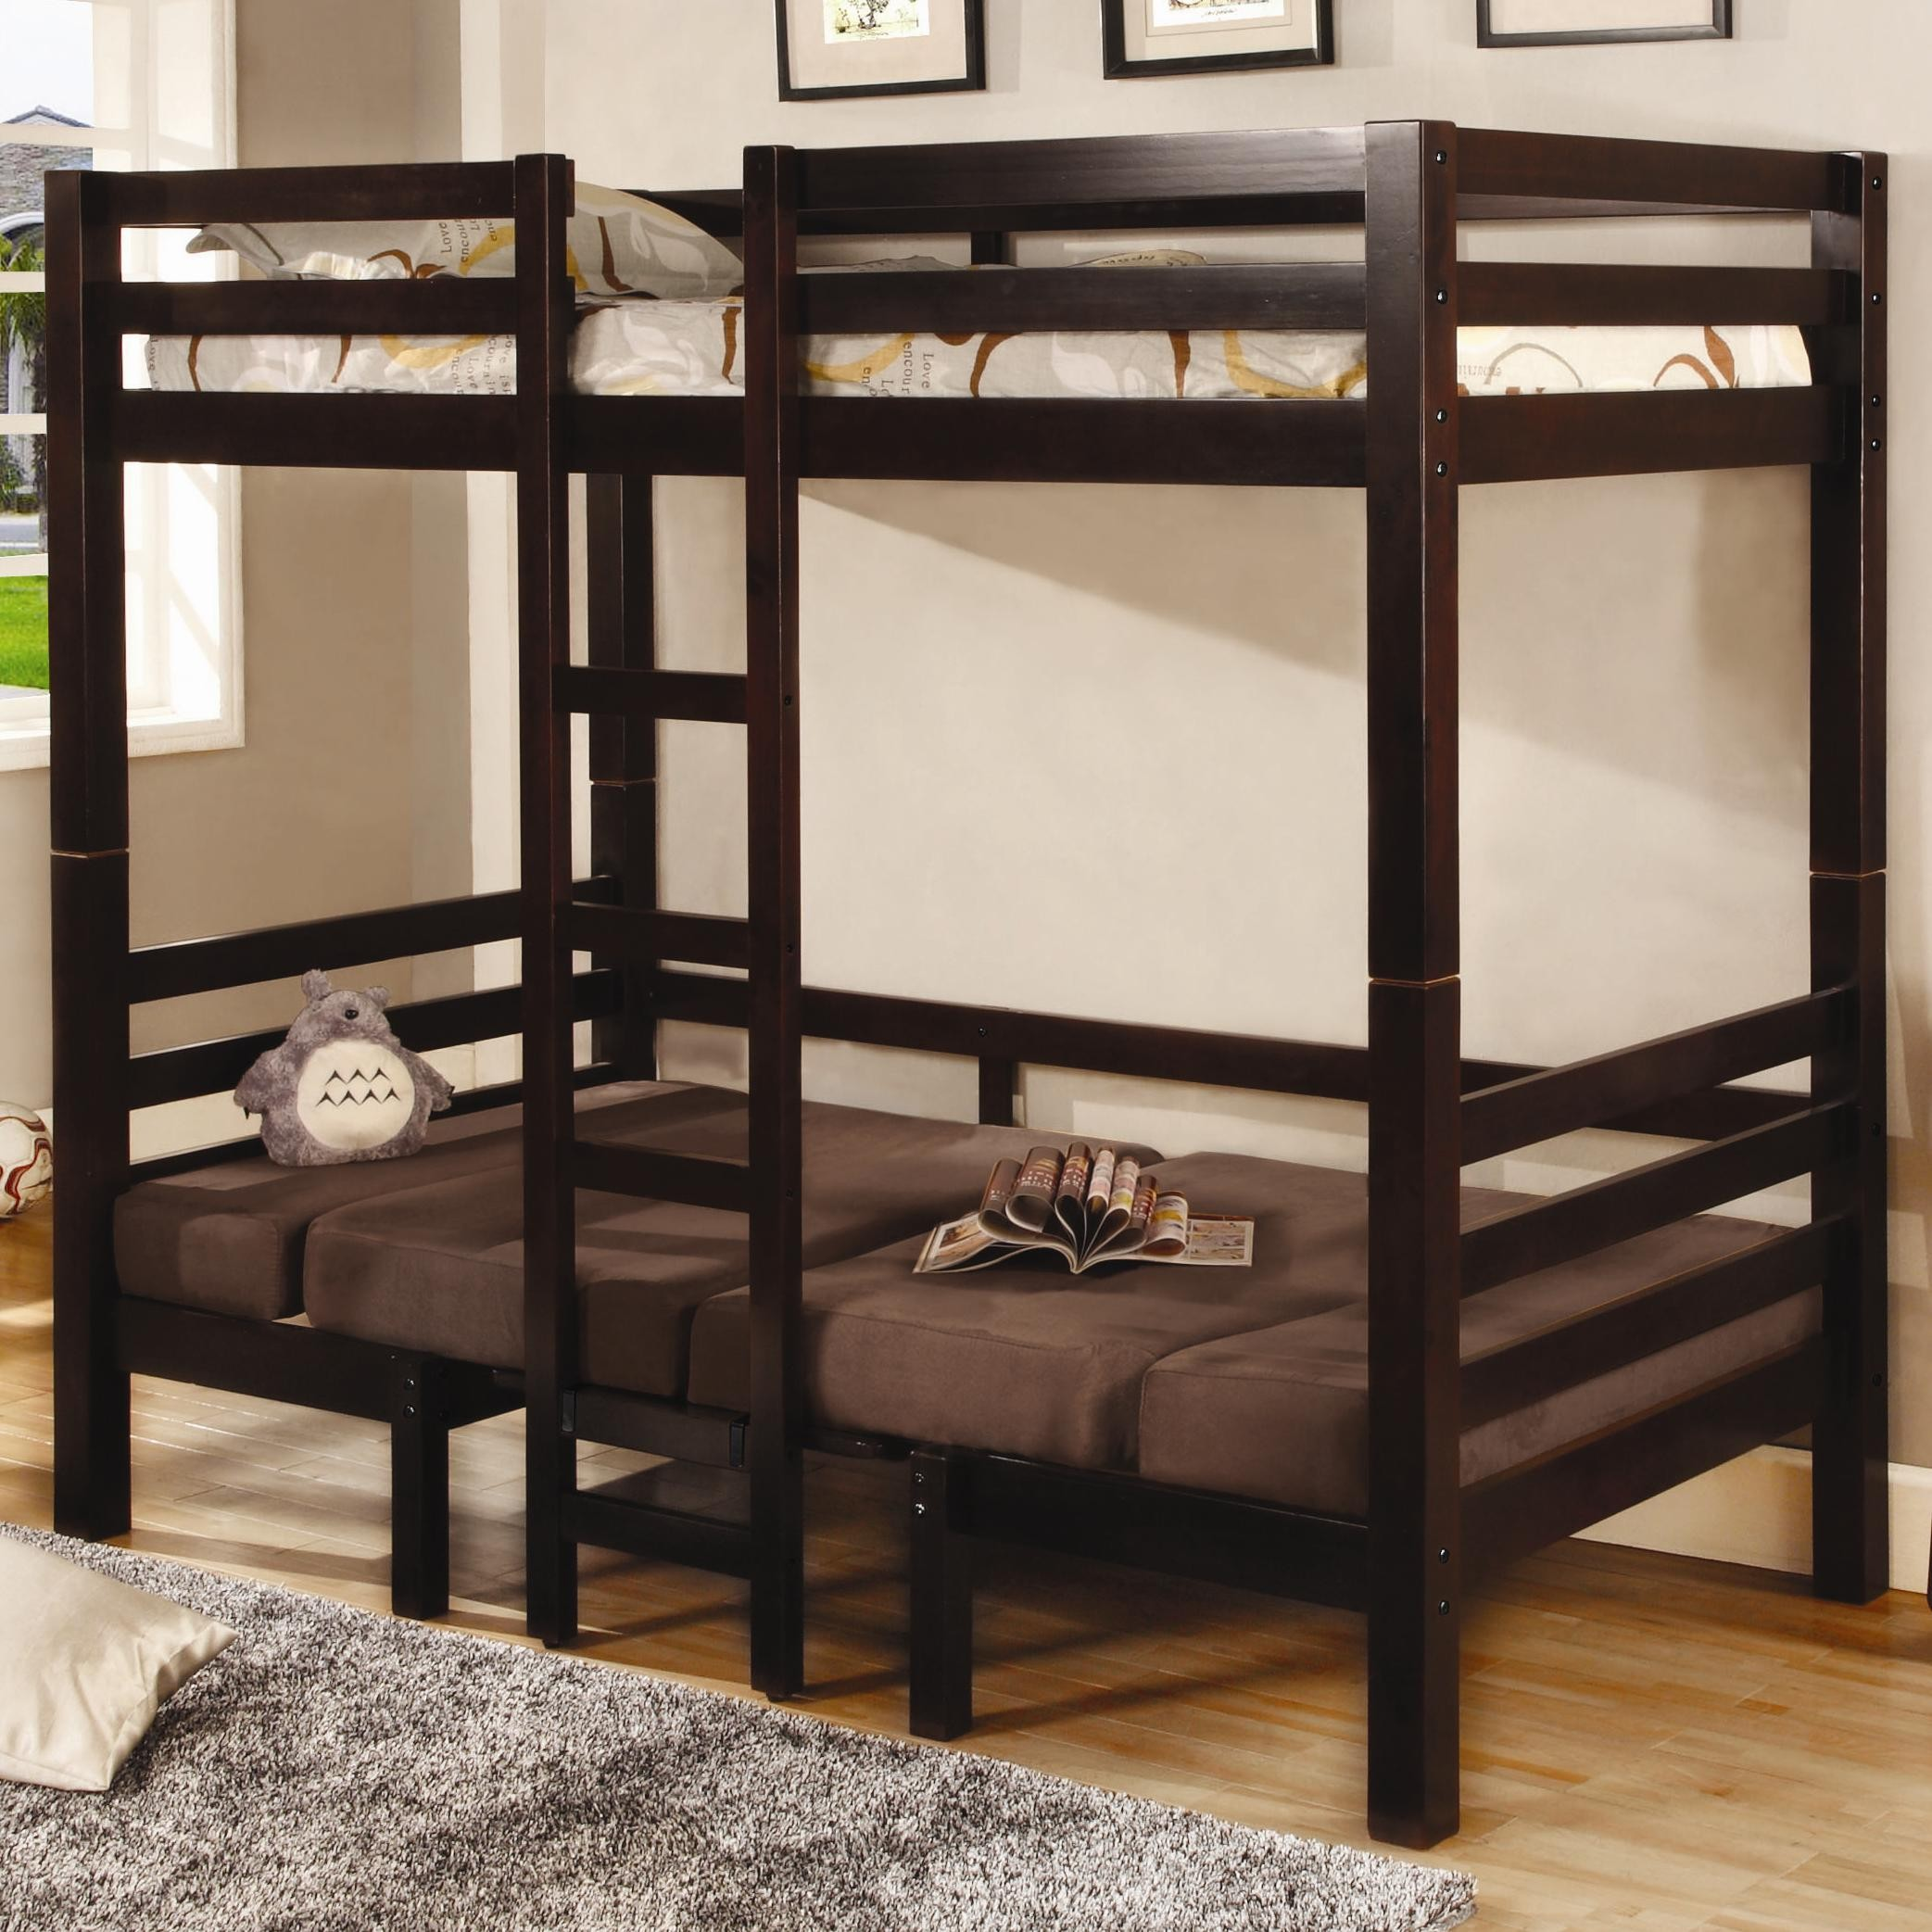 lovely loft beds for teenagers in brown with stair on wooden floor with gray rug matched with beige wall with picture and white window for teenager bedroom decor ideas